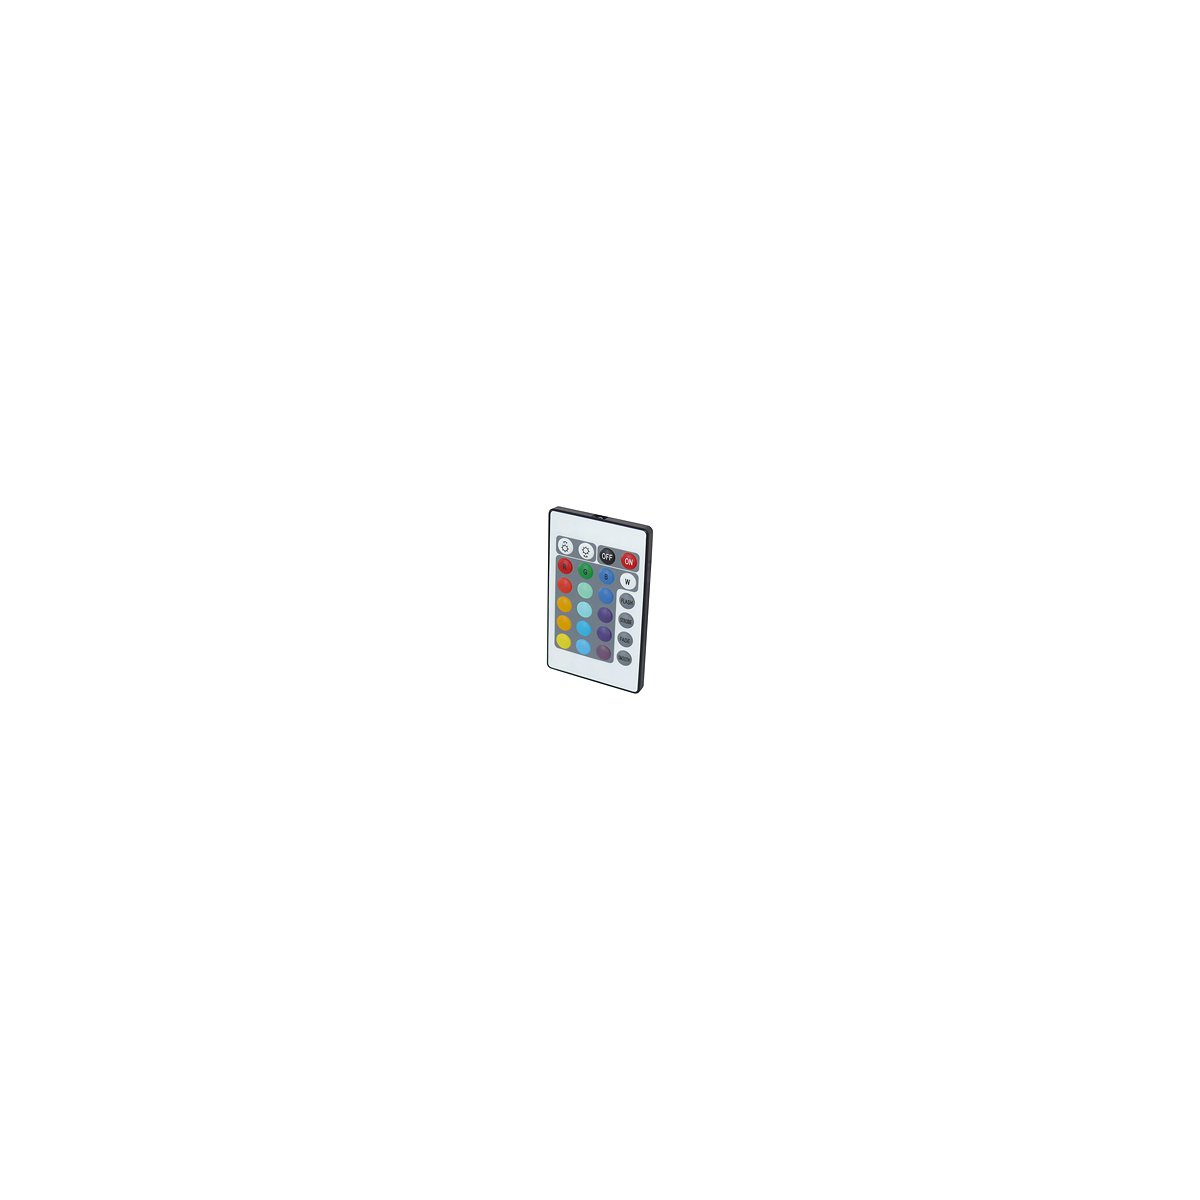 ir led rgb controller mit scheckkarten fernbedienung. Black Bedroom Furniture Sets. Home Design Ideas